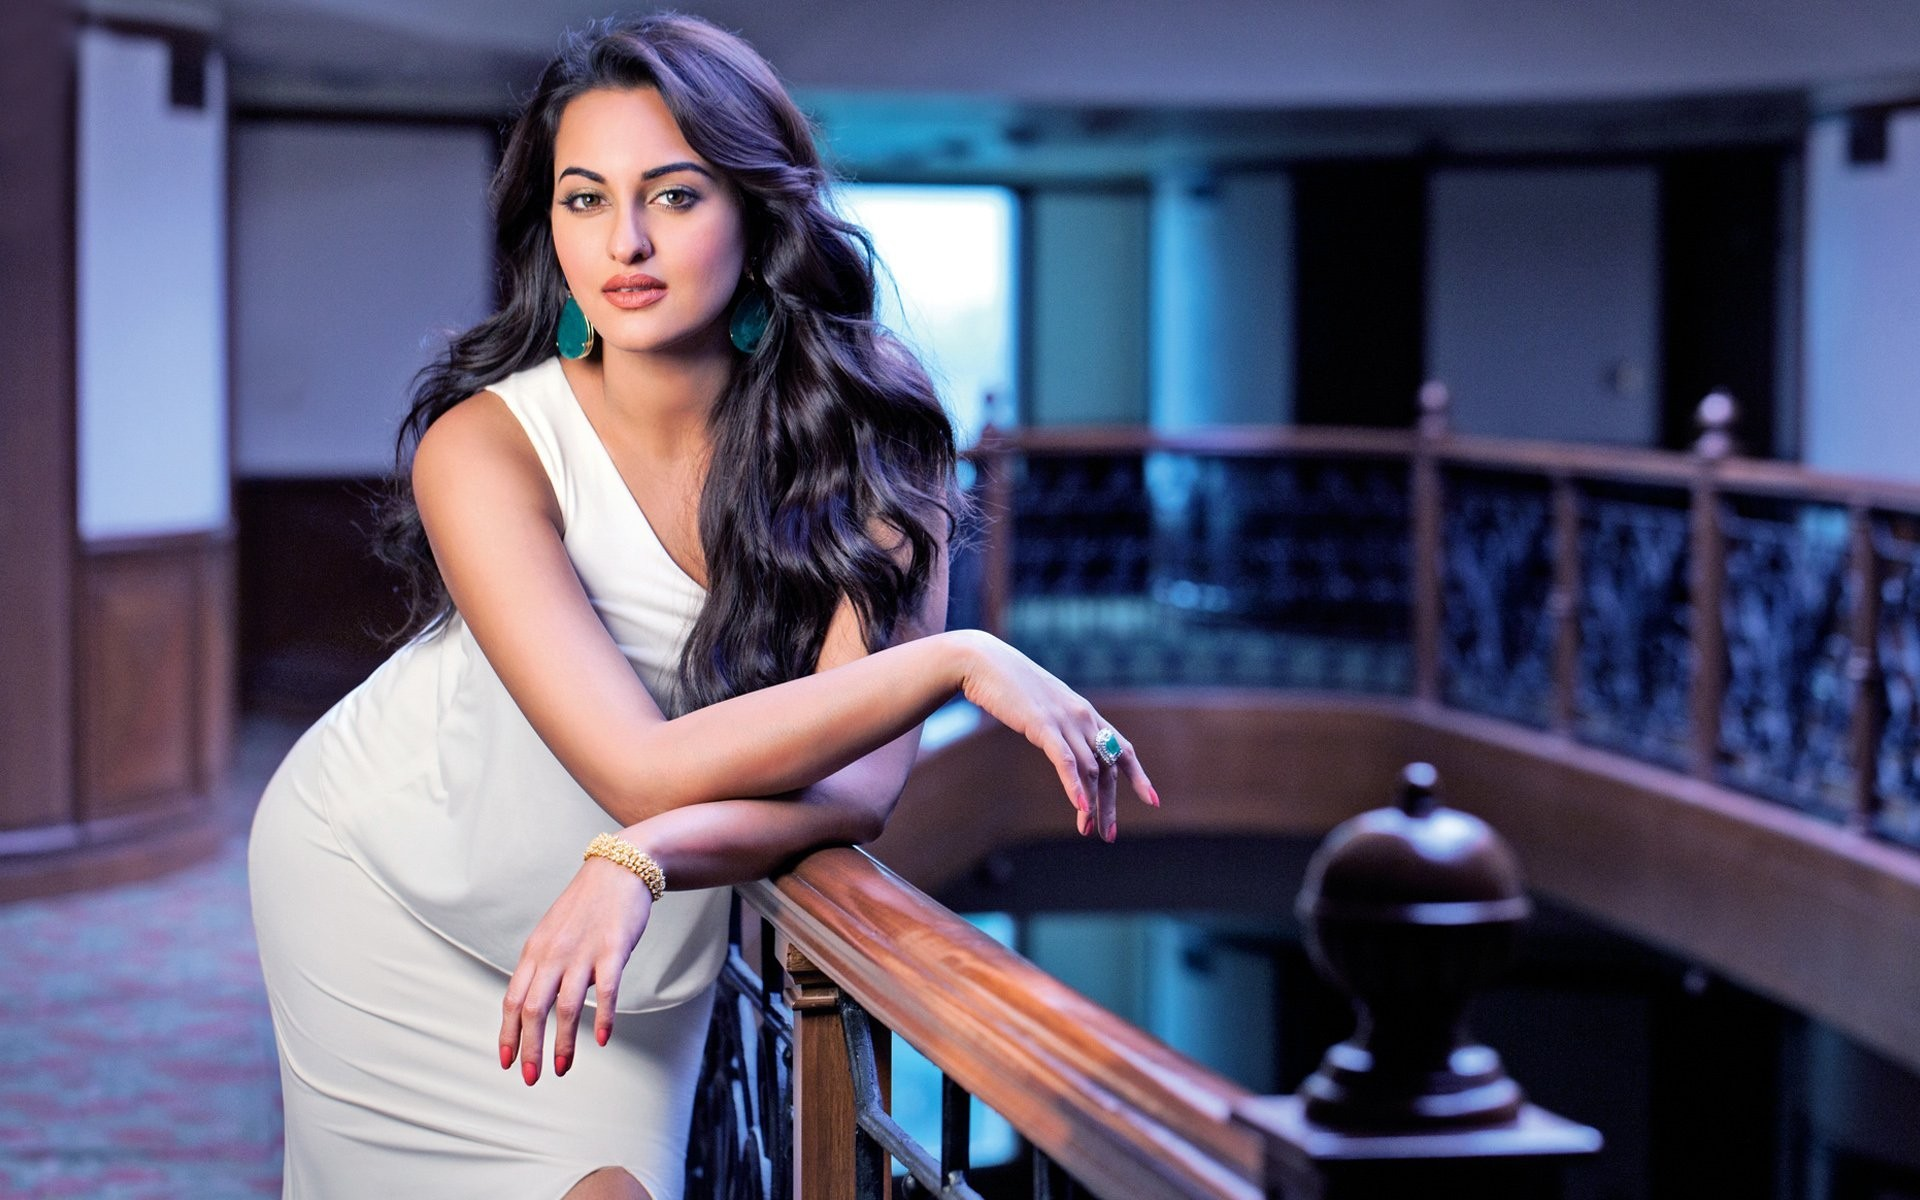 Physical appearance is an illusion: Sonakshi Sinha